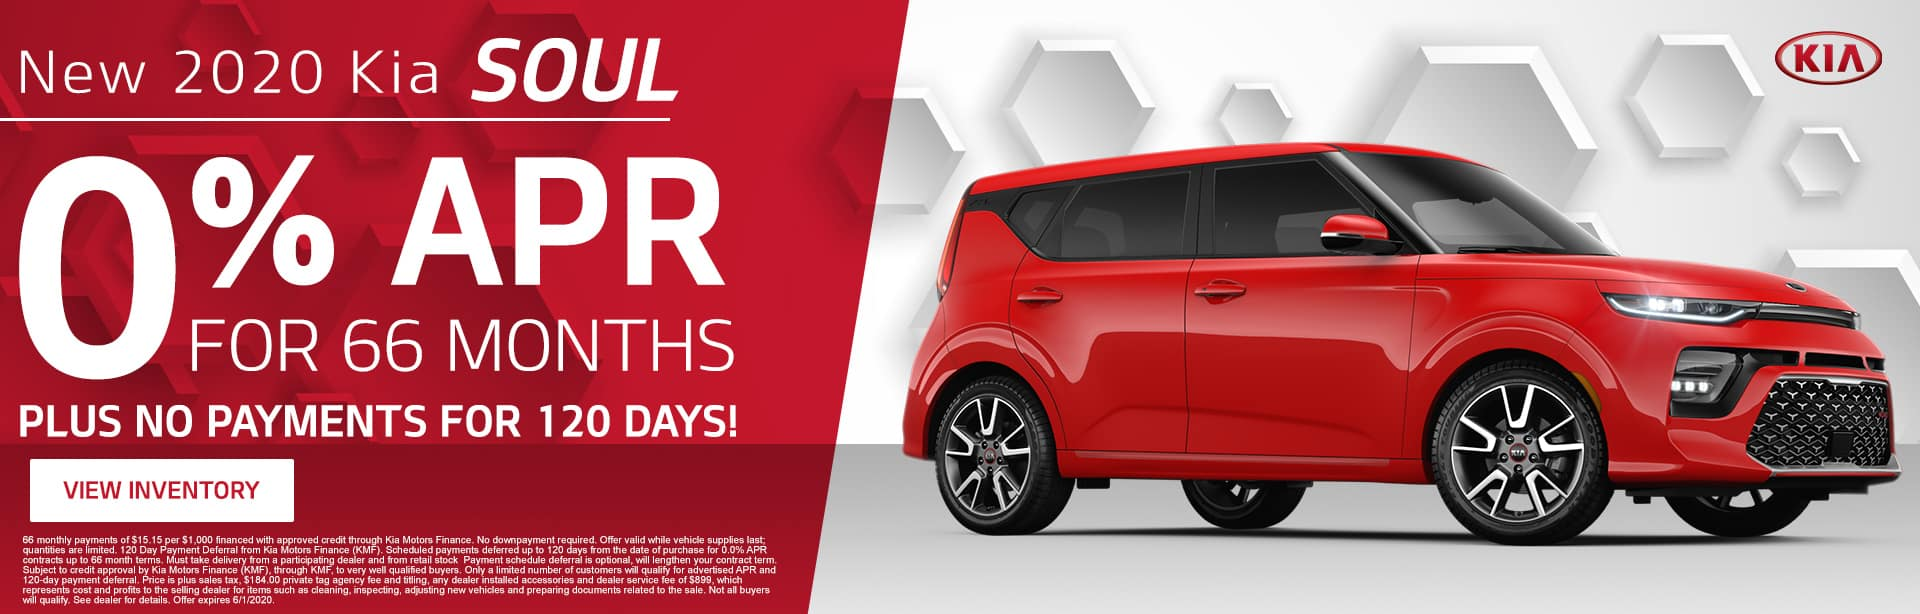 New 2020 Kia Soul | 0% APR For 66 Months Plus No Payments For 120 Days!